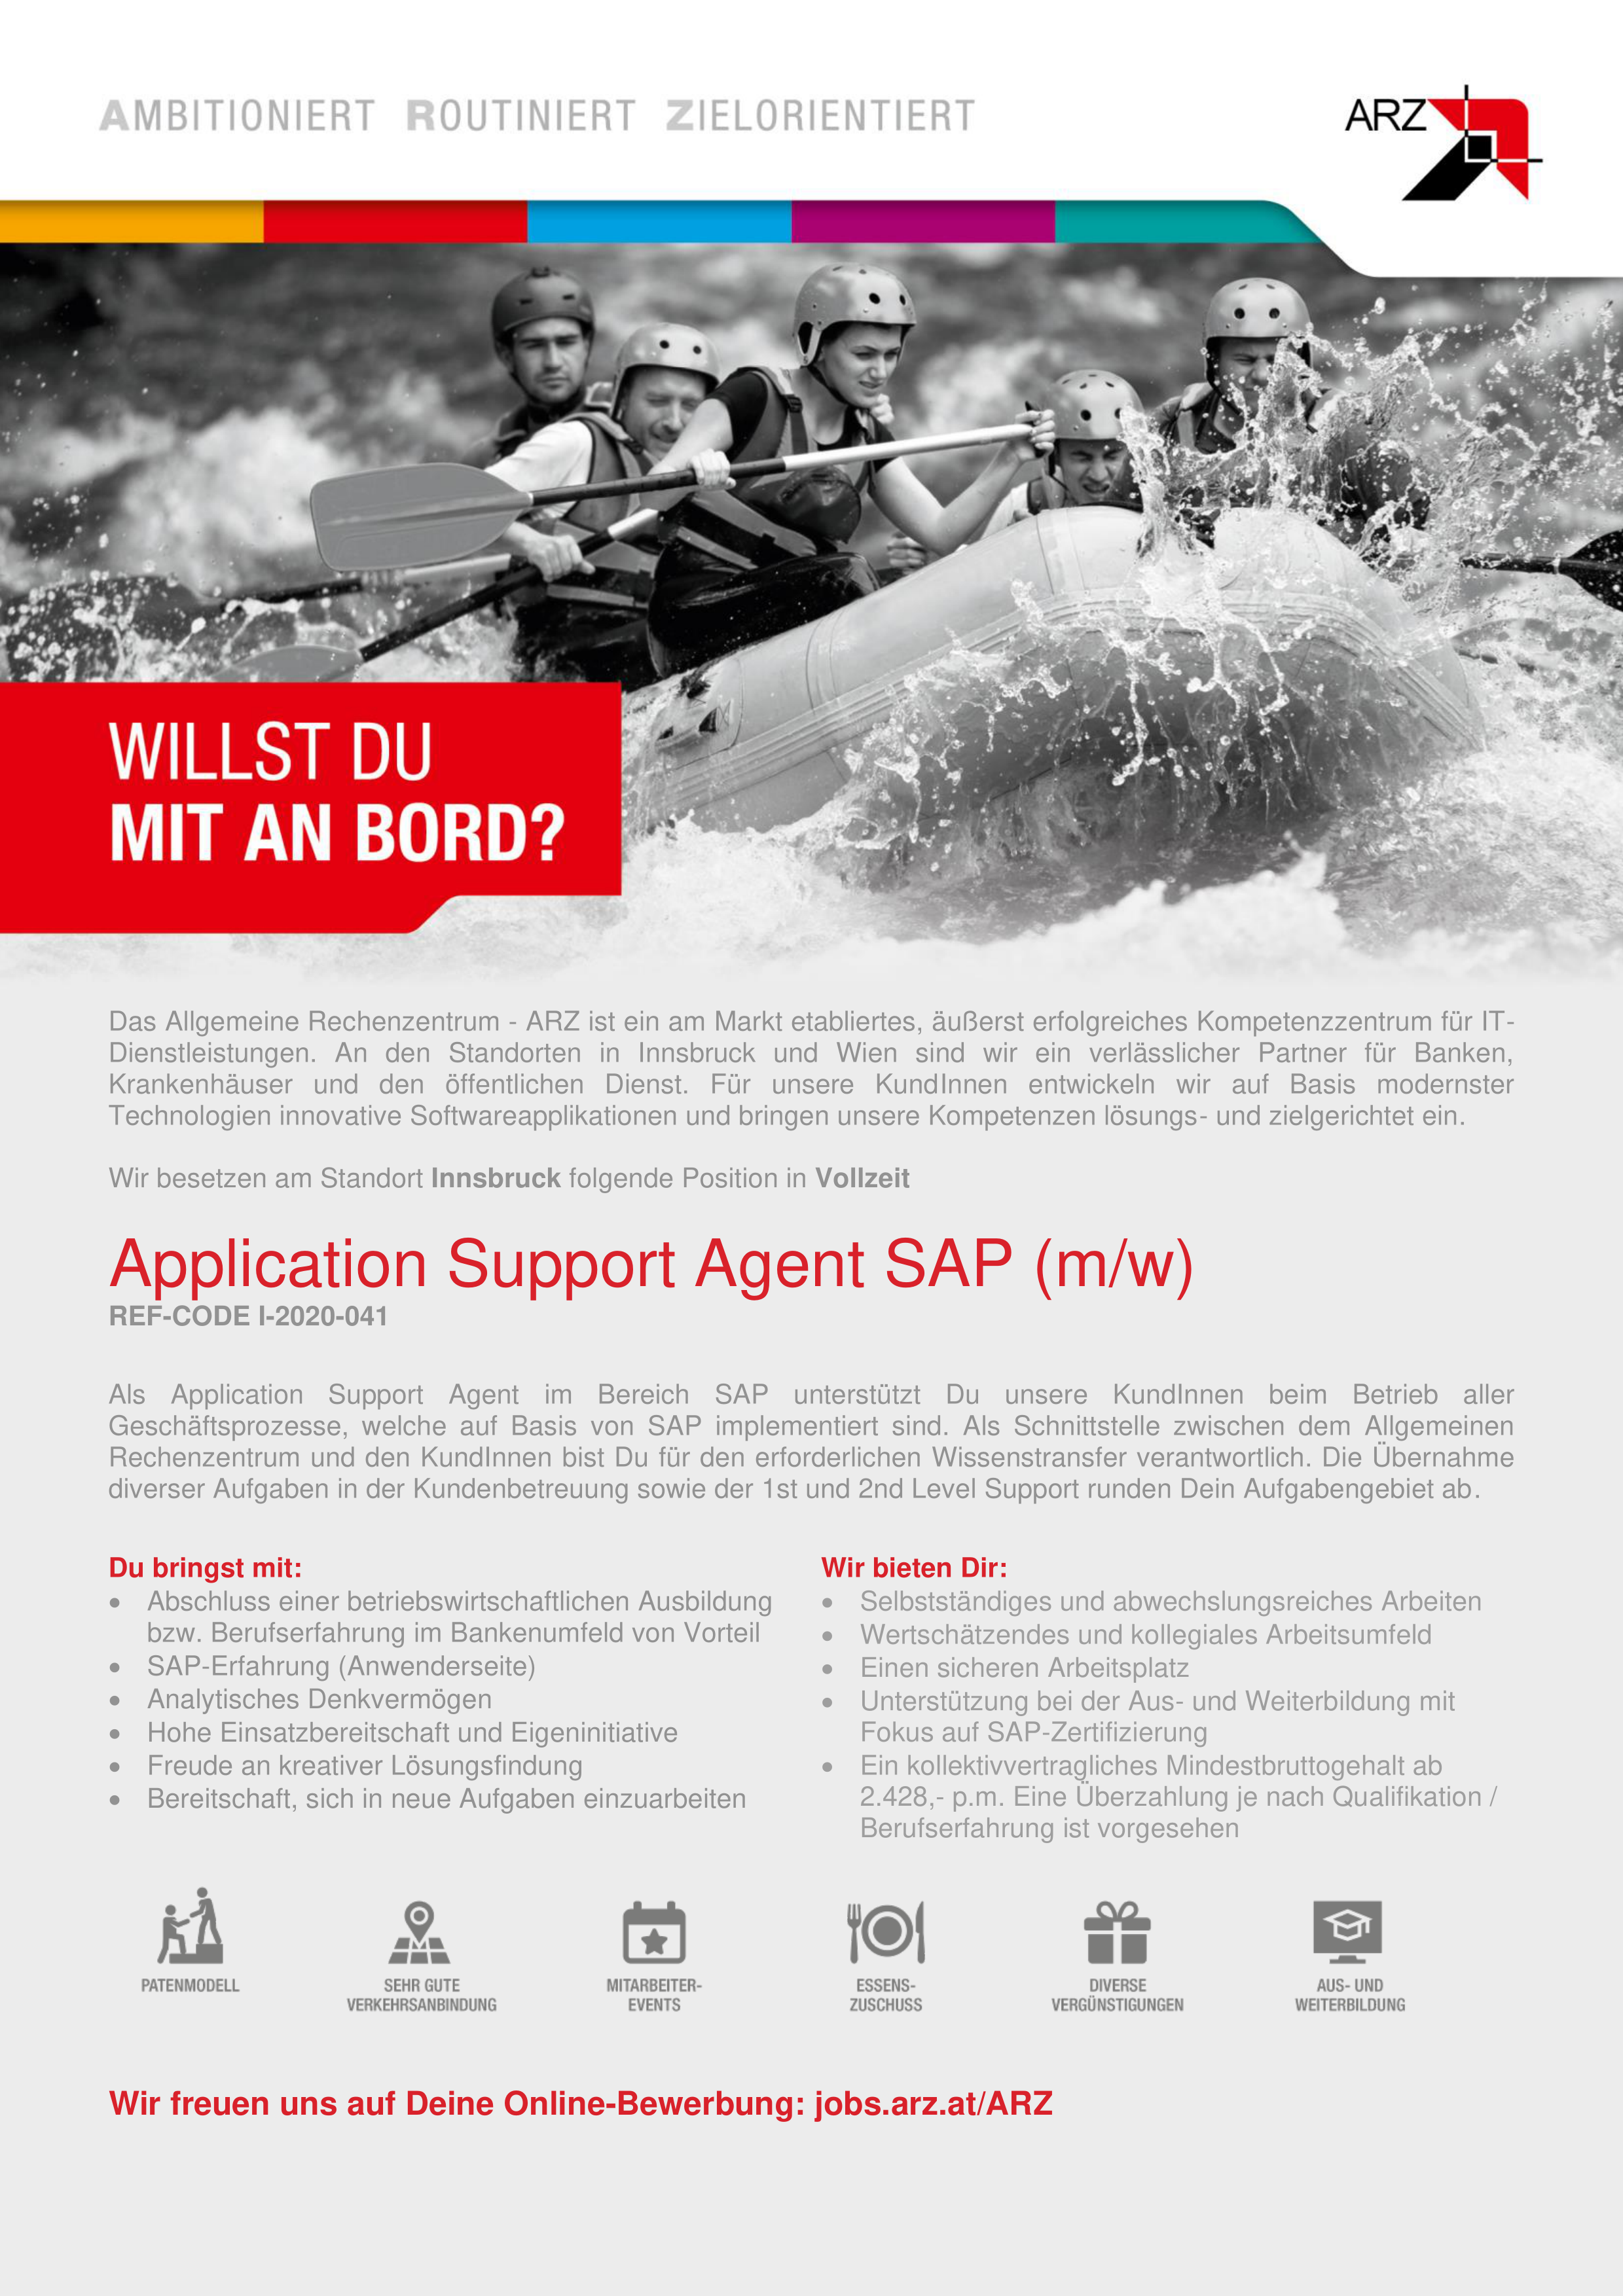 Application Support Agent SAP (m/w) Ref-Code I-2020-041